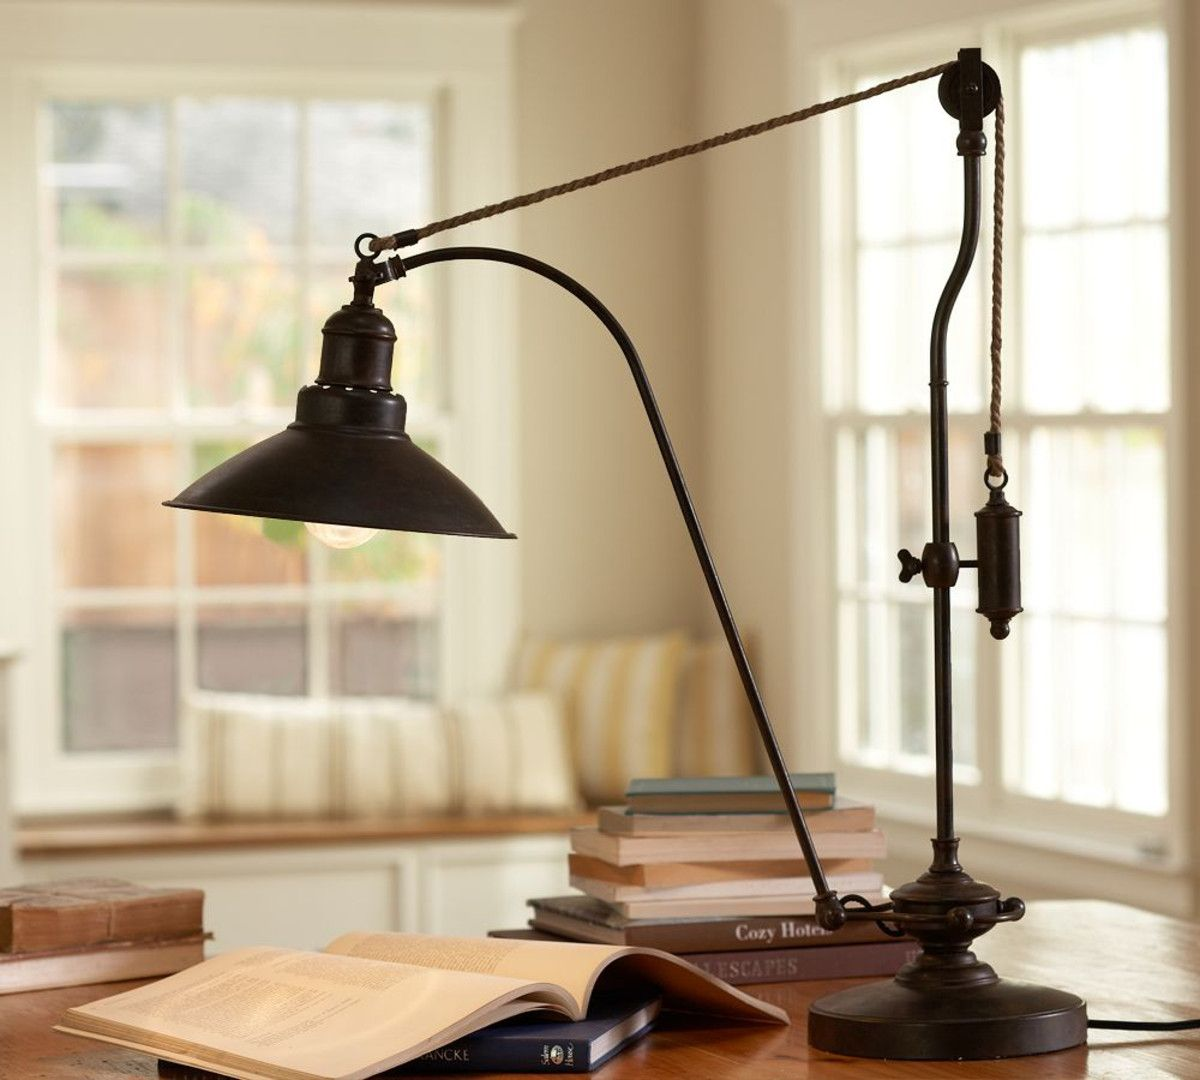 Glendale pulley task table lamp humble abode pinterest pulley